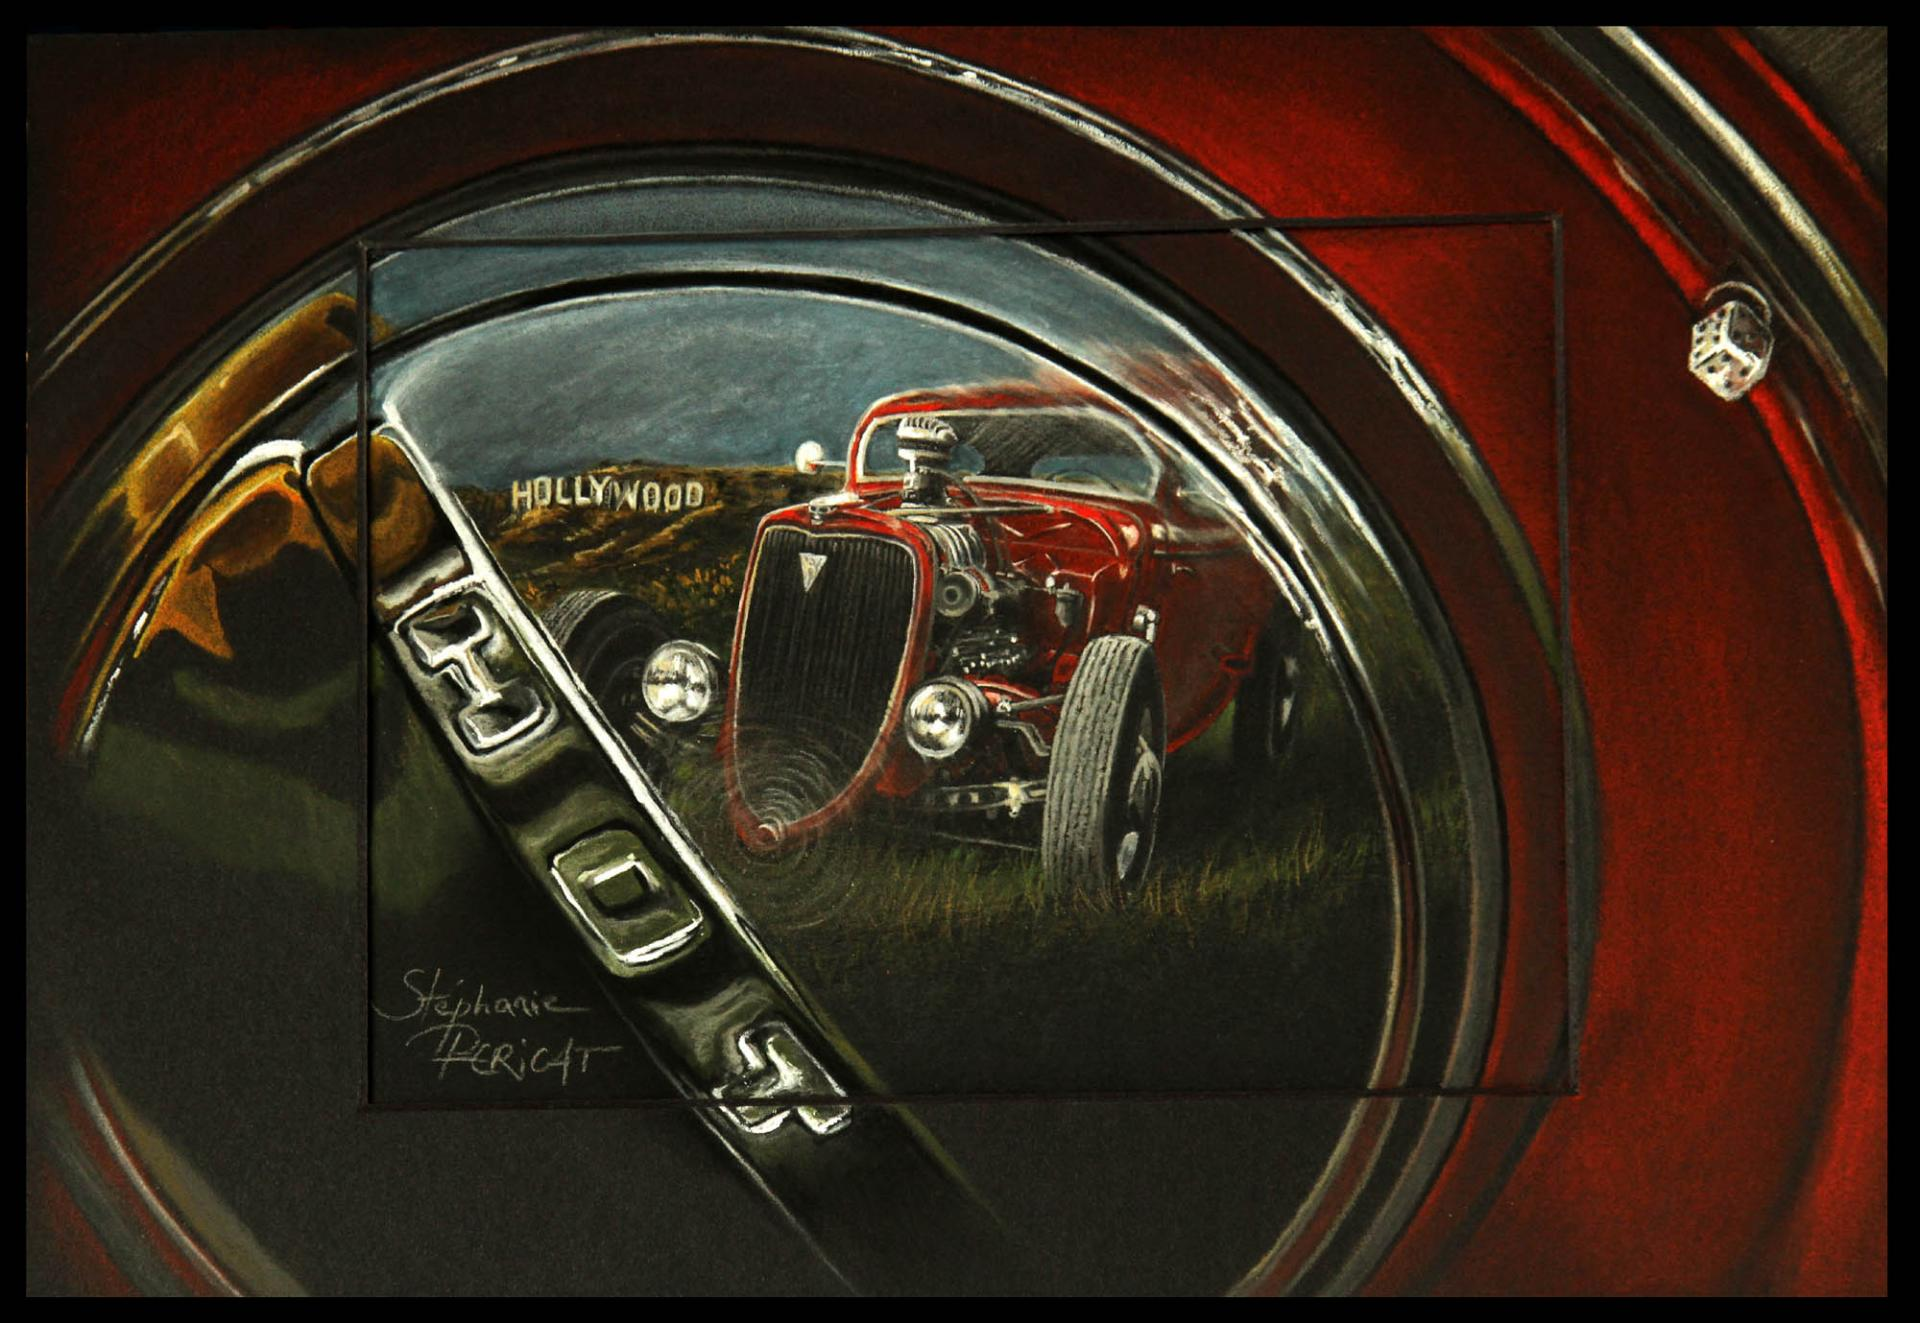 HOT WHEEL (origine du hot rod) - 20x30cm - AV for sale